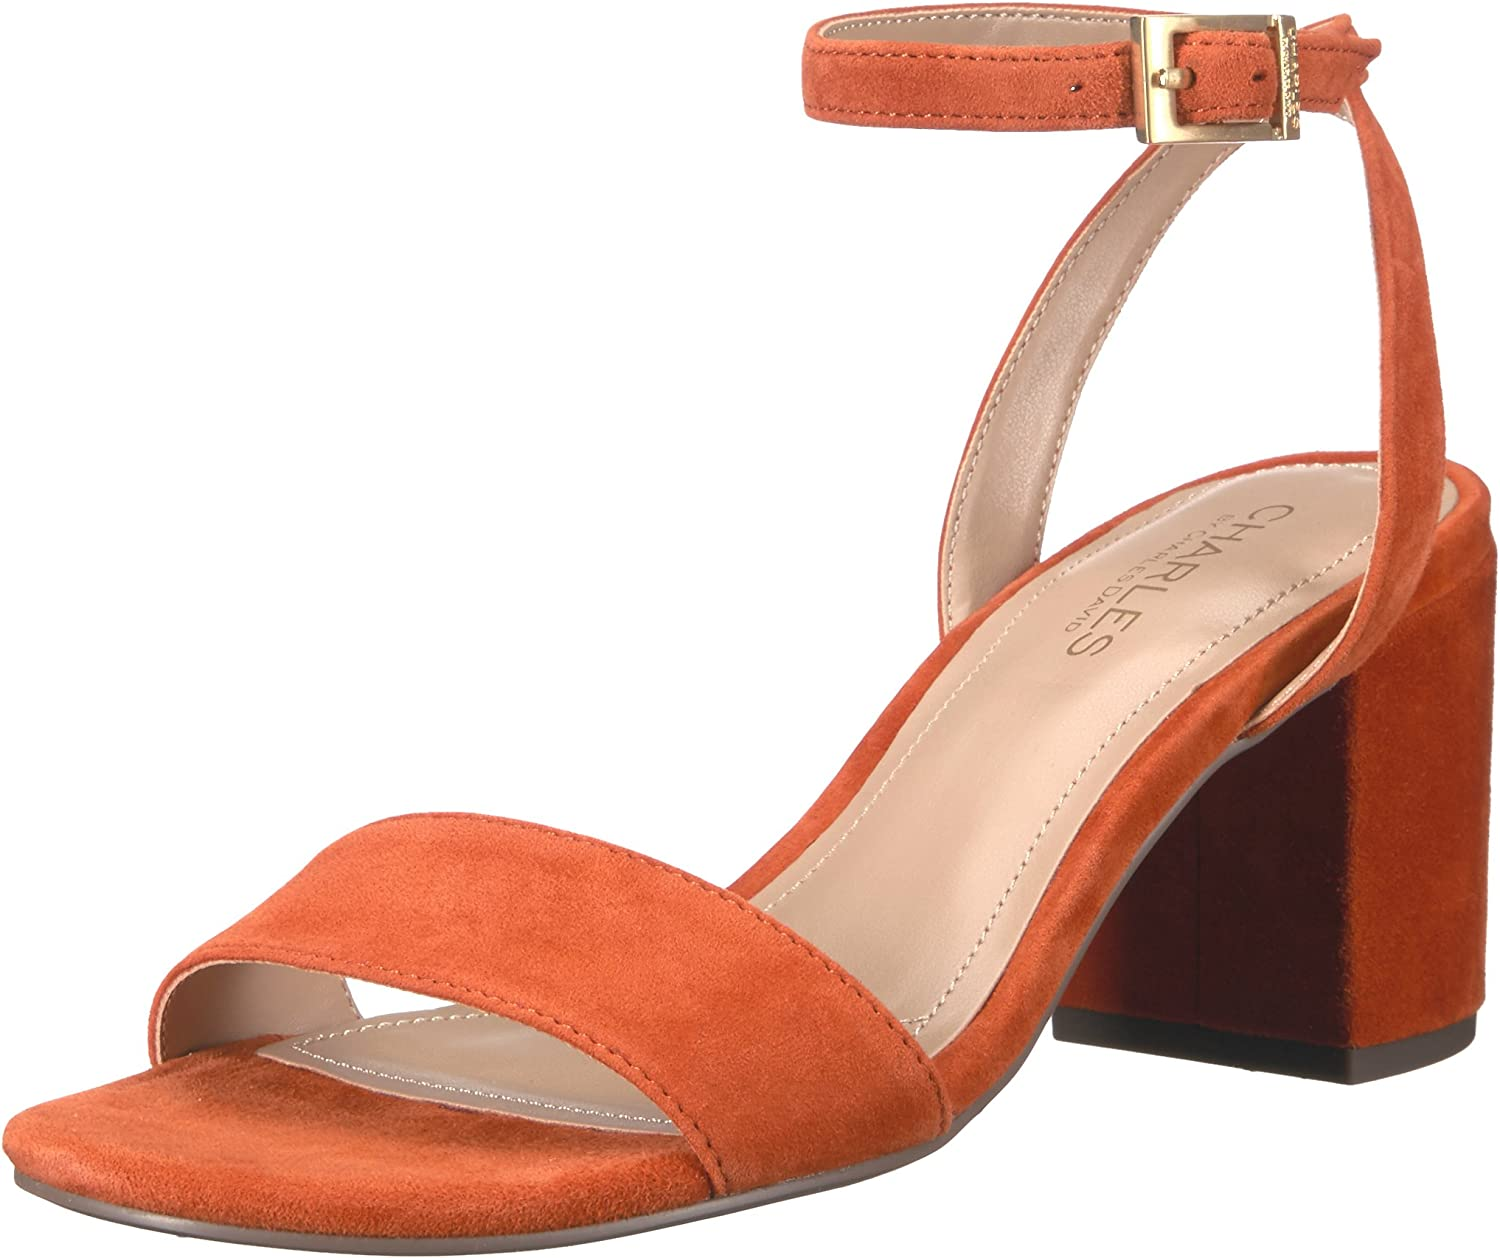 Charles by Charles David Womens Keenan Dress Sandal